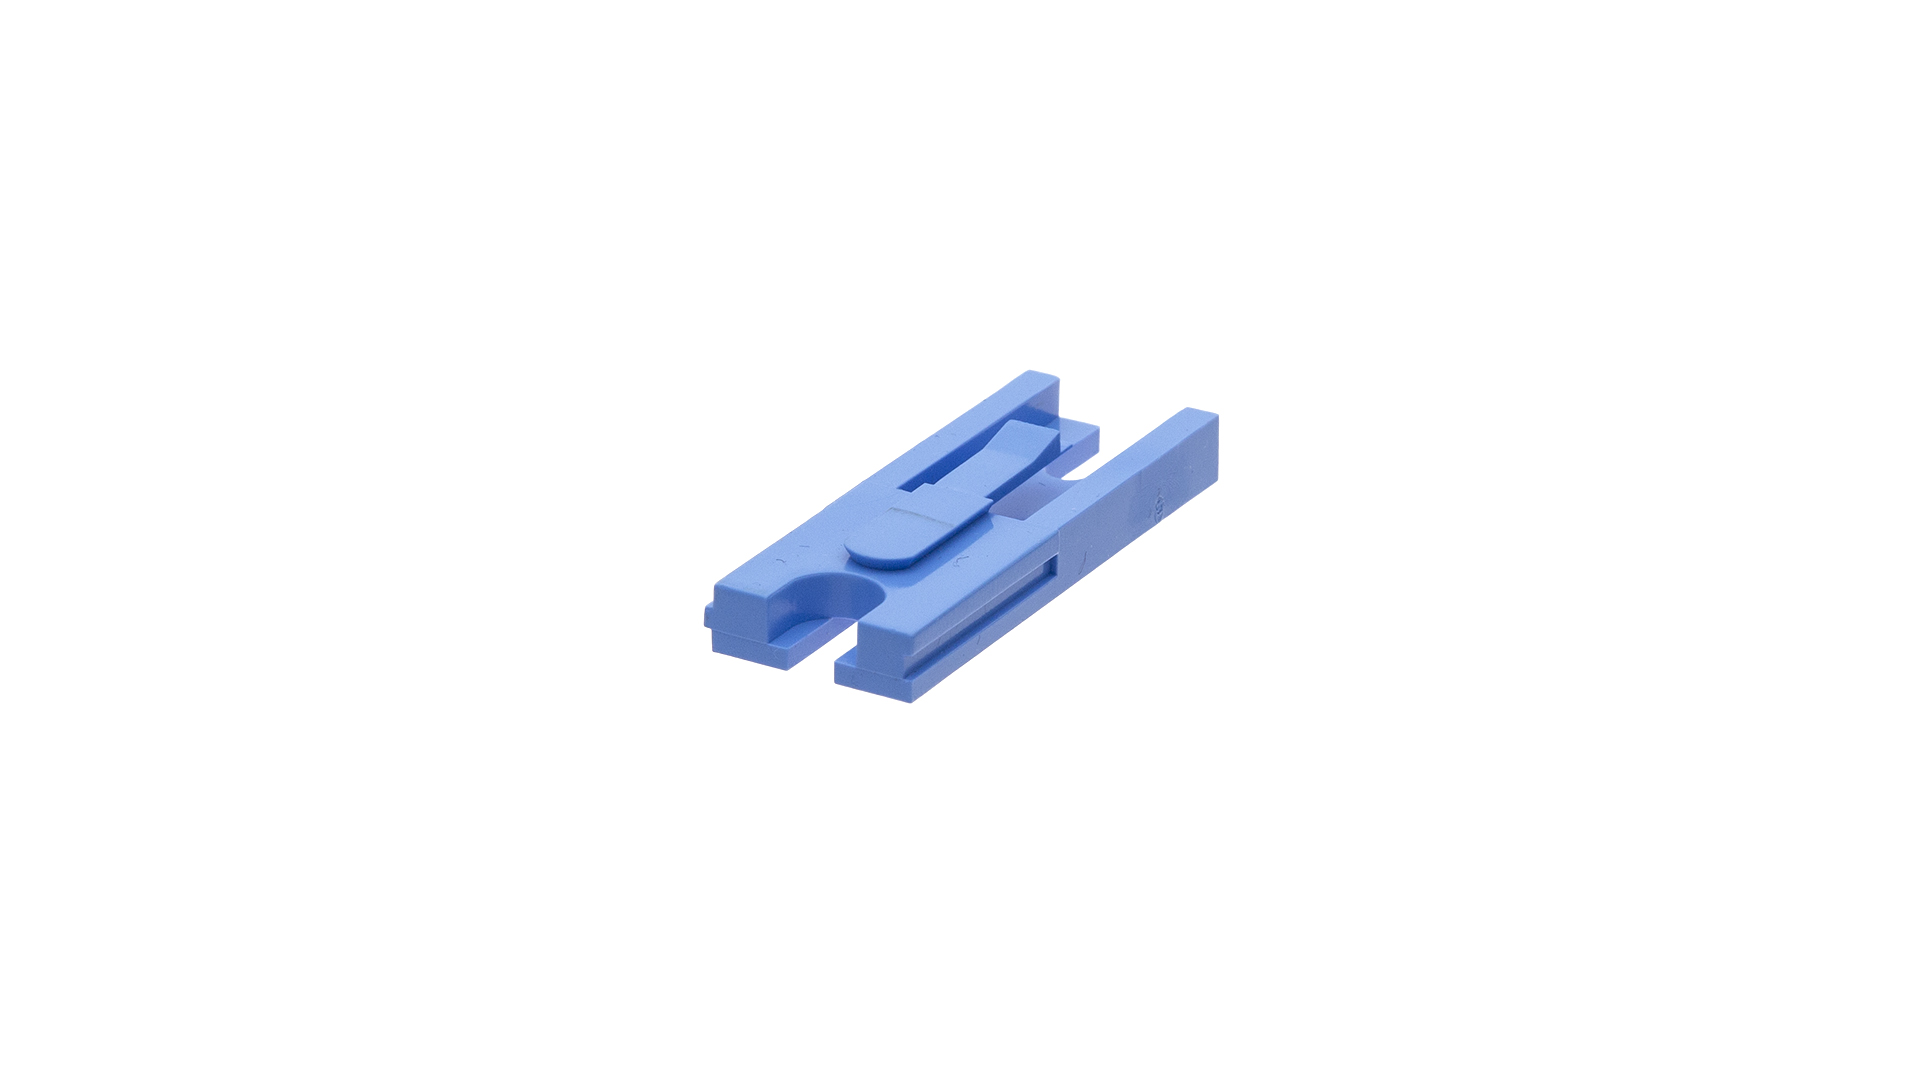 PP75 Accessories Surface Mount for Locking Housings